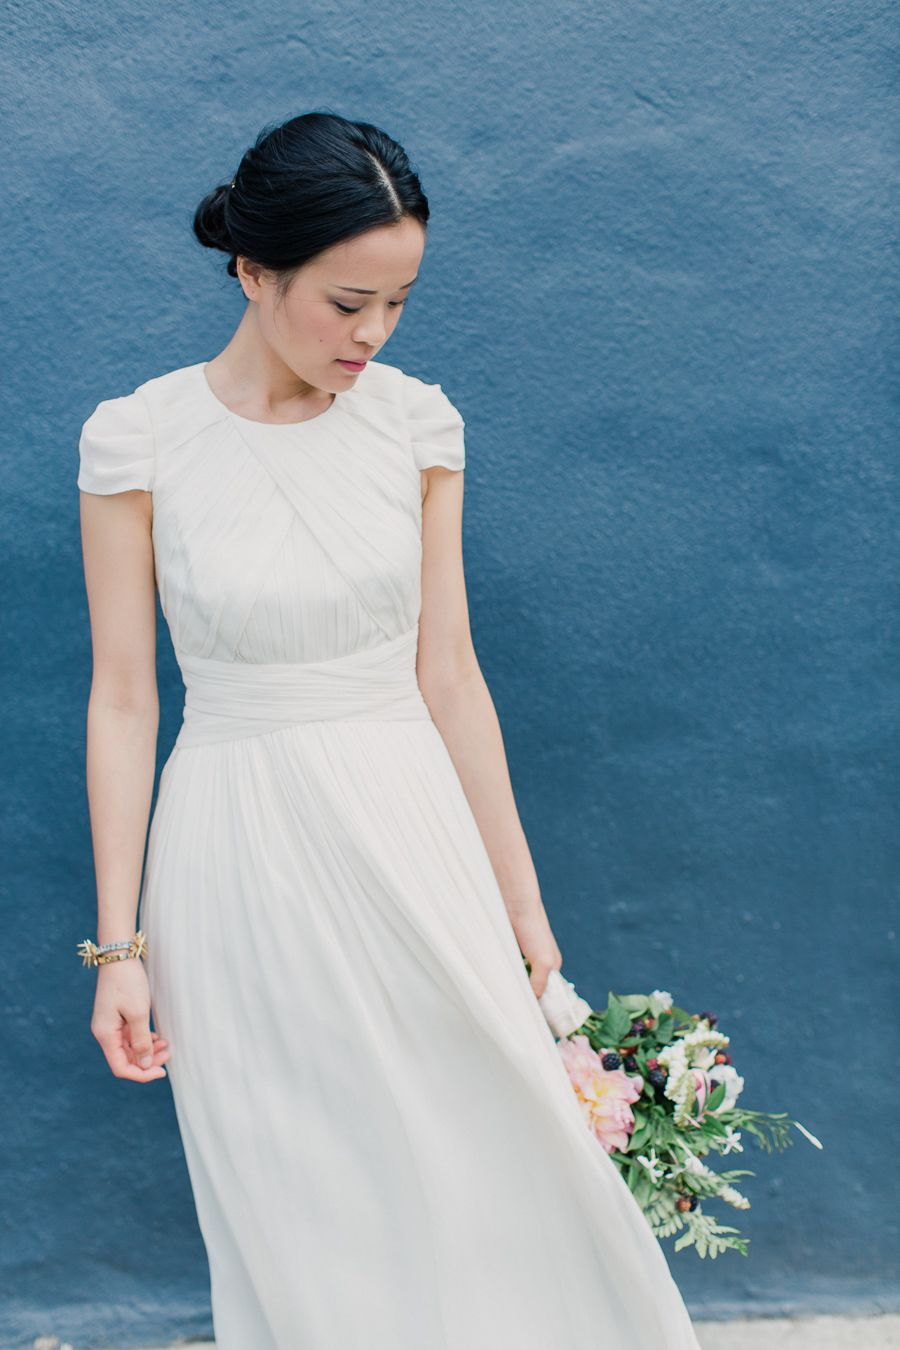 Trending: Ultra-Flattering Short Sleeve Wedding Dresses | Wedding ...